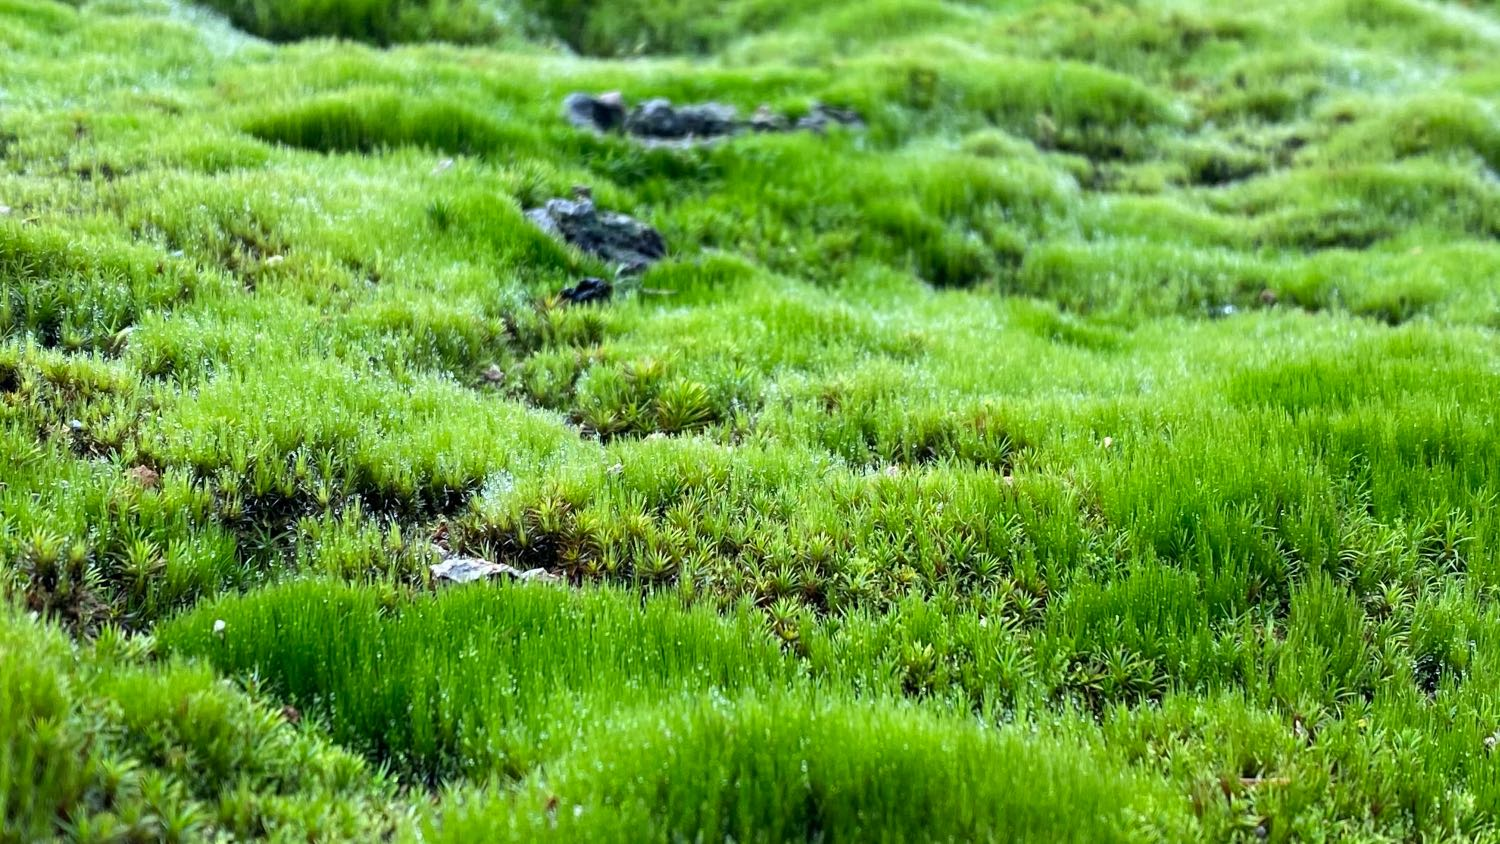 Icealnd is the realm of extremities. You can find snow in summer, and spring green in late autumn